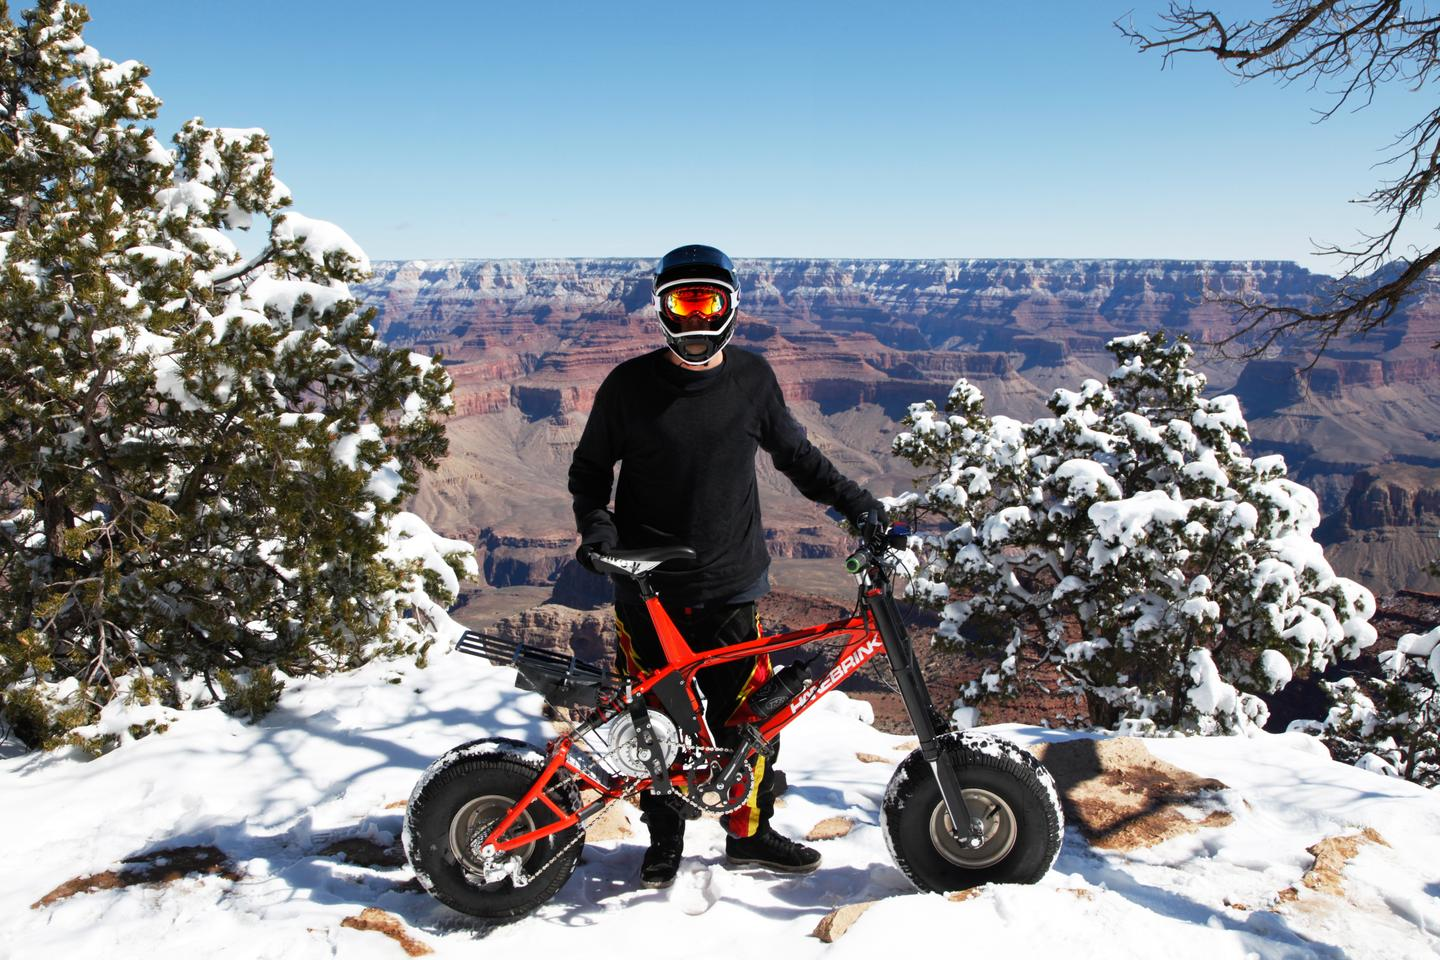 Taking to the hills just got a whole lot more comfortable thanks to the addition of rear suspension on the new Hanebrink III all-terrain electric bike